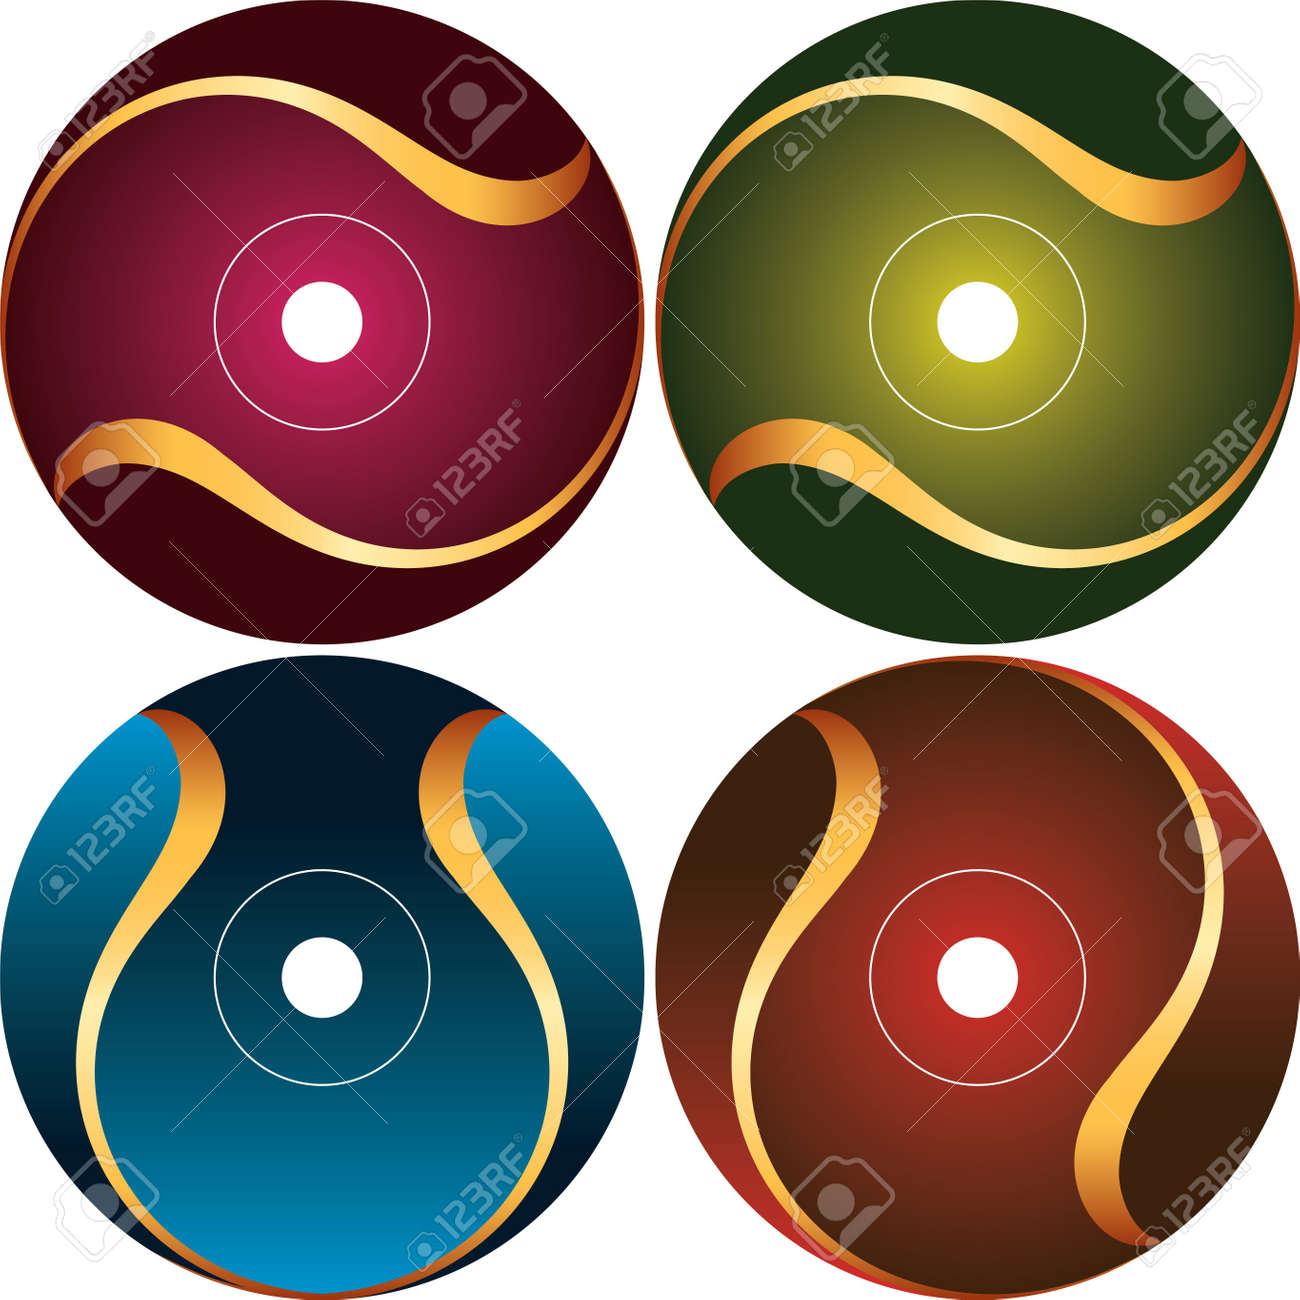 Cd - Dvd Label Design Template Vector Art Royalty Free Cliparts ...